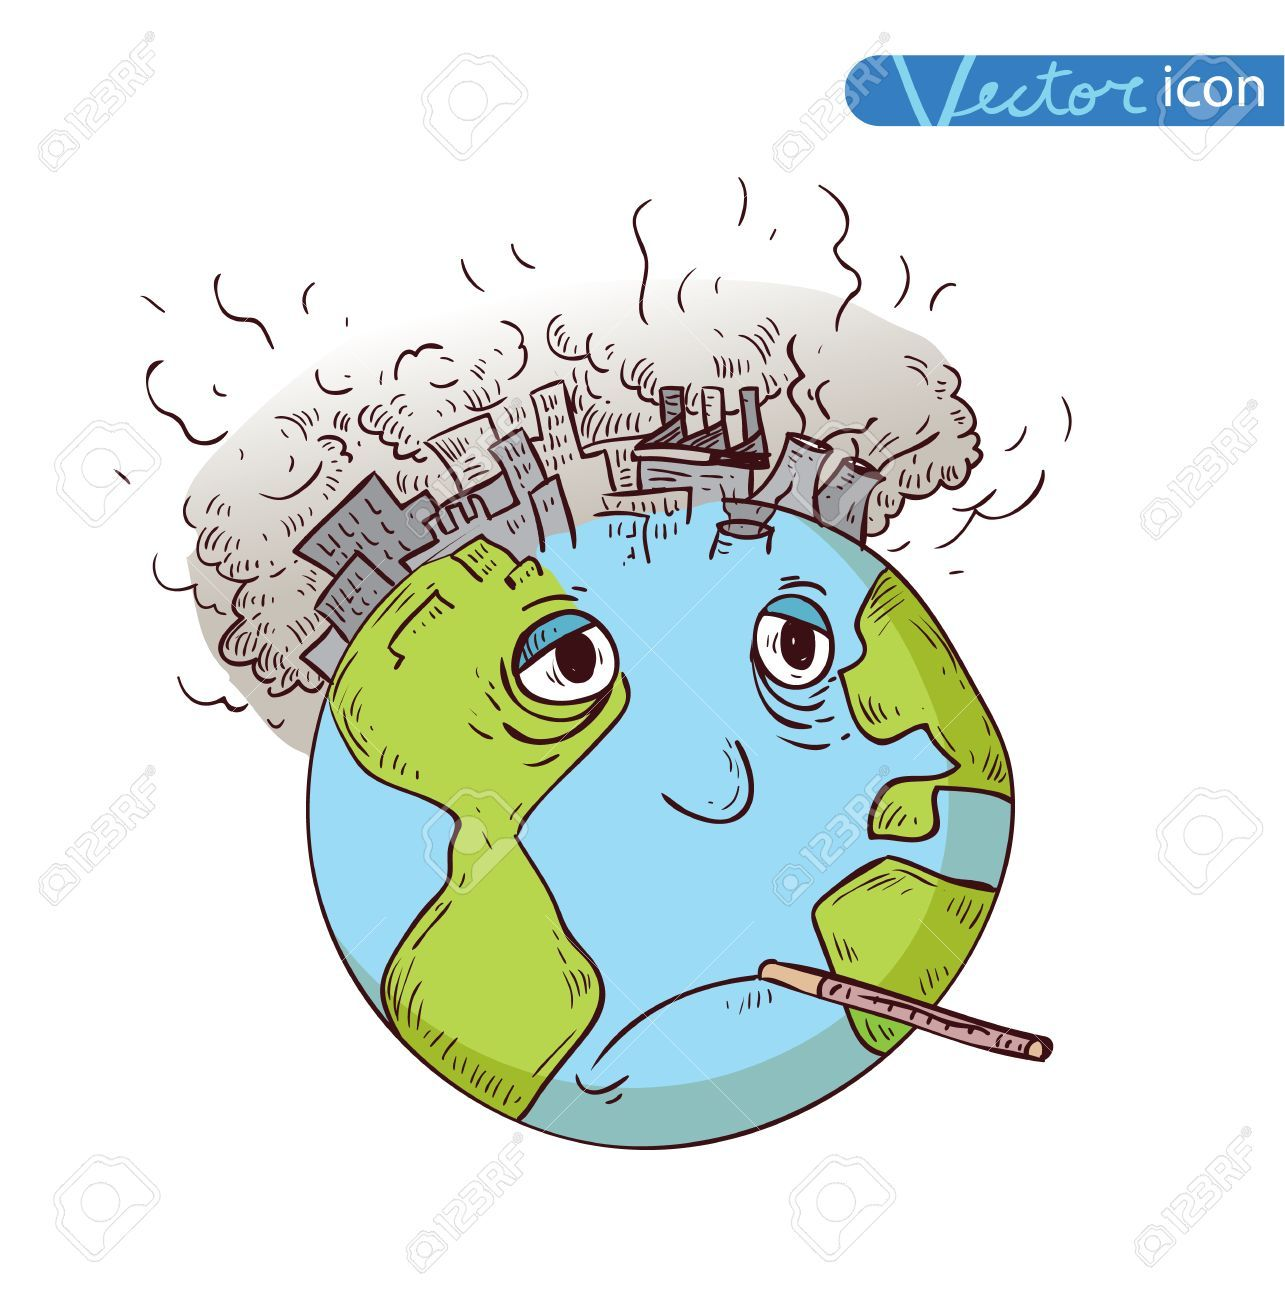 Earth pollution clipart 2 » Clipart Portal.